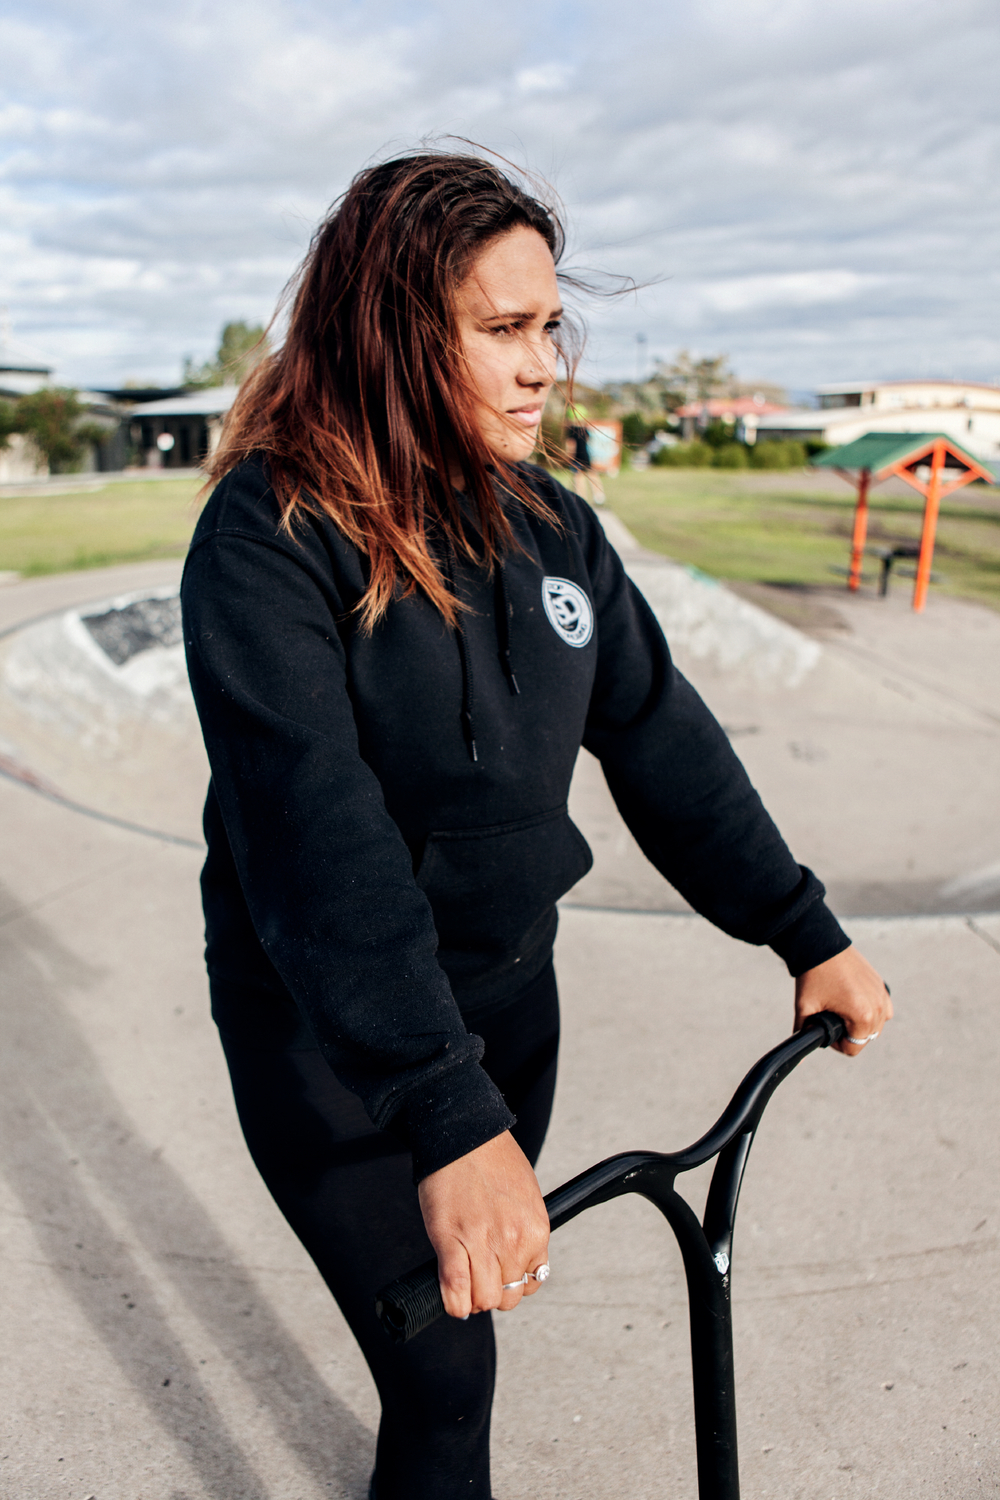 """Saraeah spends most of her time at the local skate park next door to the centre and across the street from her school with her boyfriend, Tommy. """"I skate everyday after school and on the weekend, that's all I do."""""""